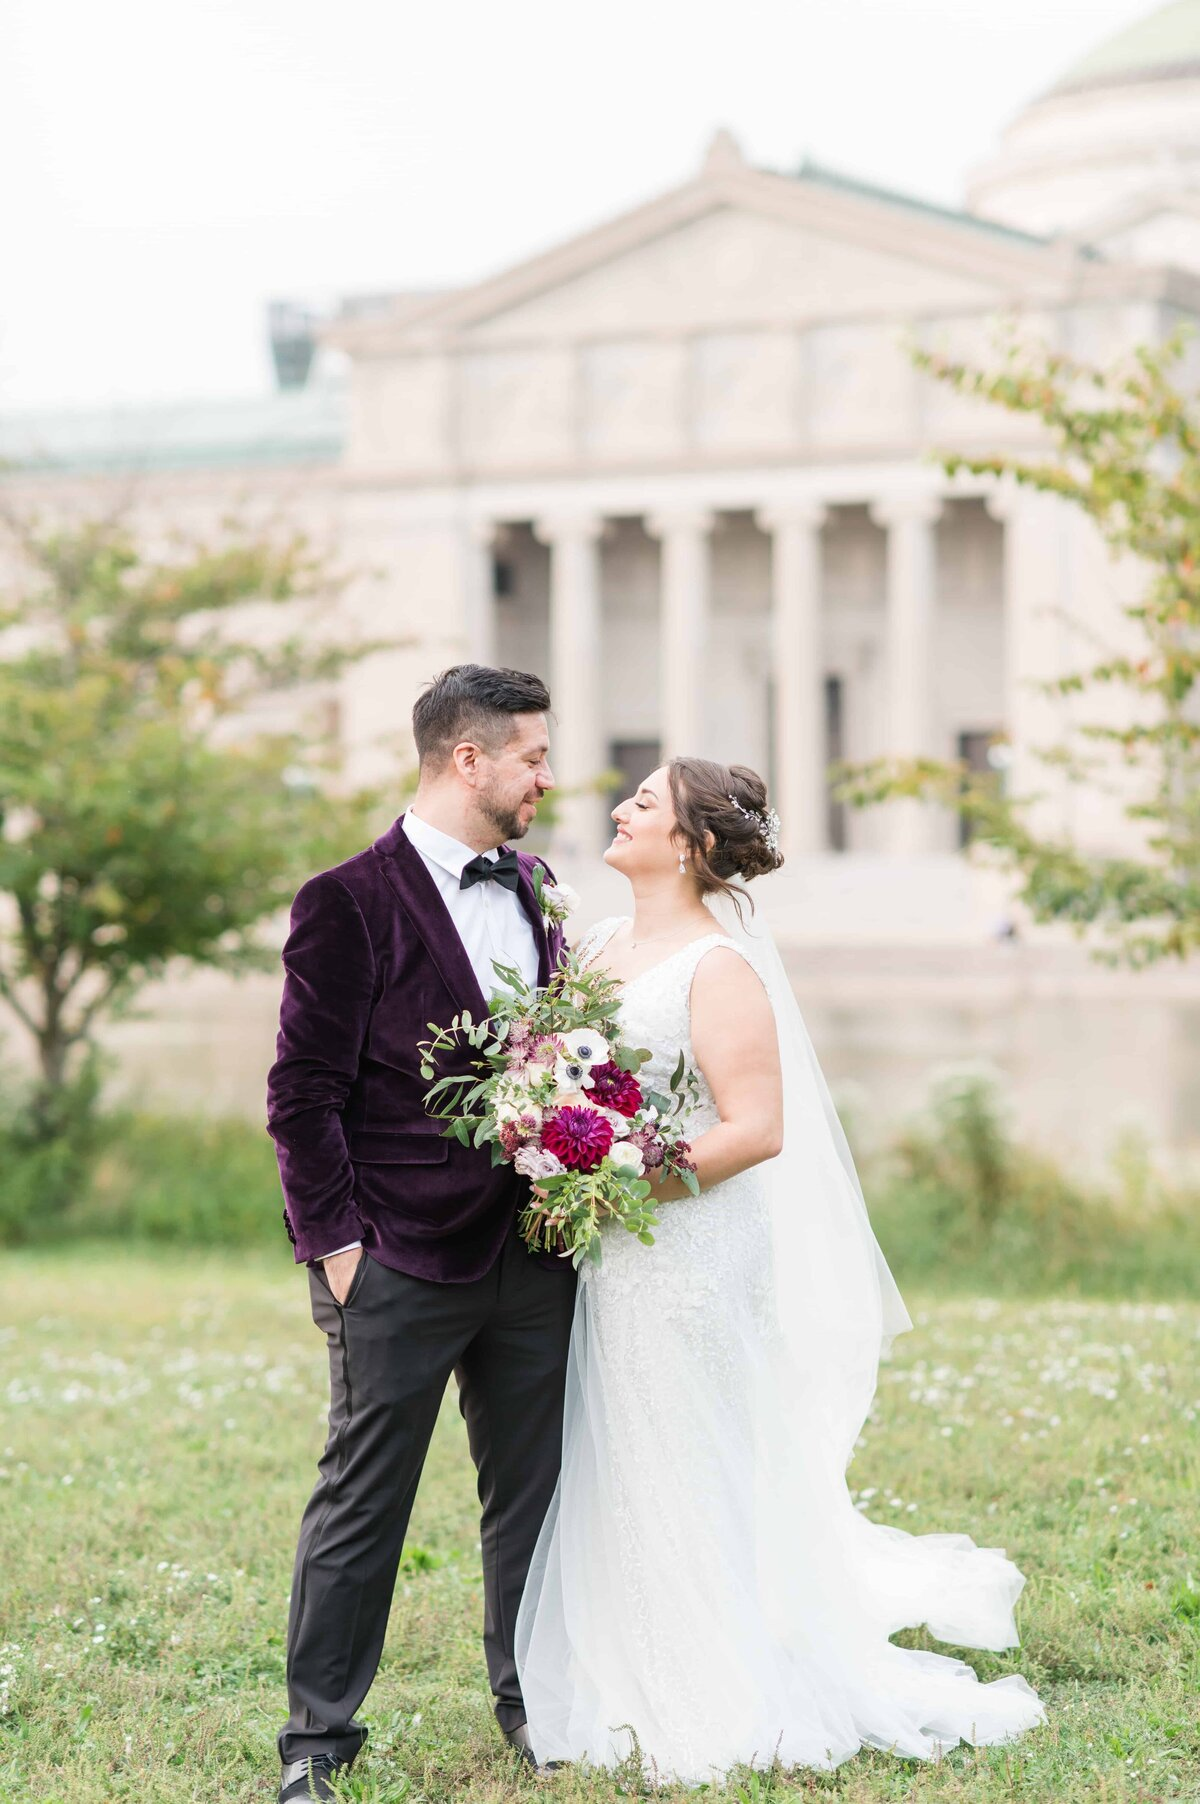 Chicago Bride and Groom portrait with Museum in the background.